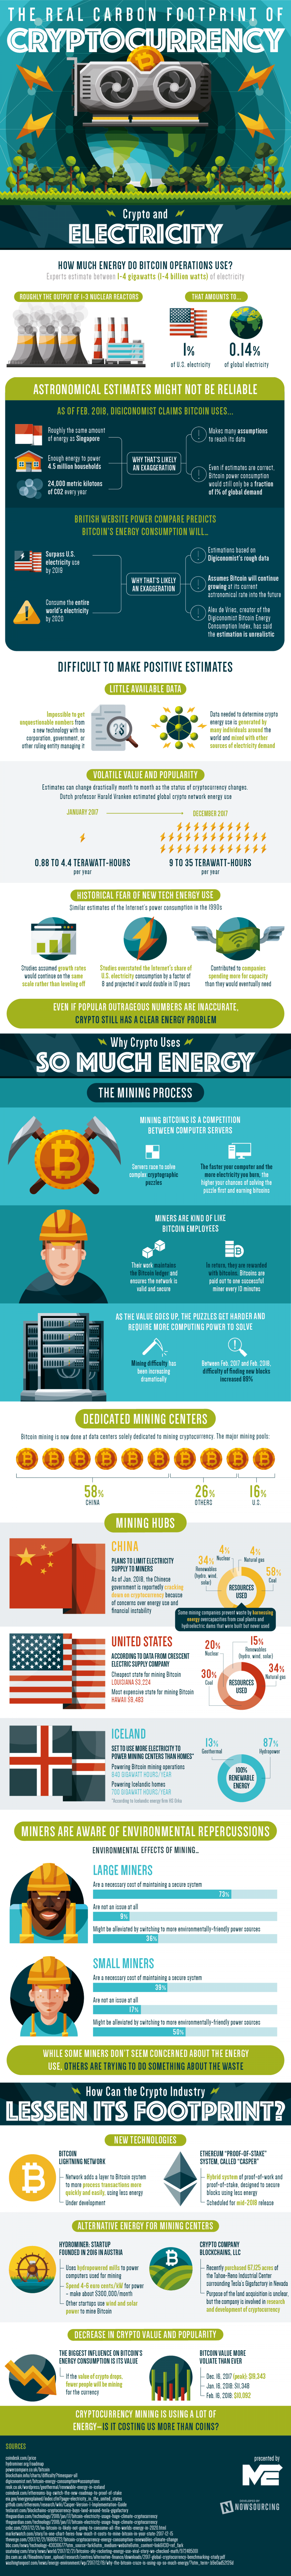 Does Crypto Have A Carbon Footprint Issue? Infographic